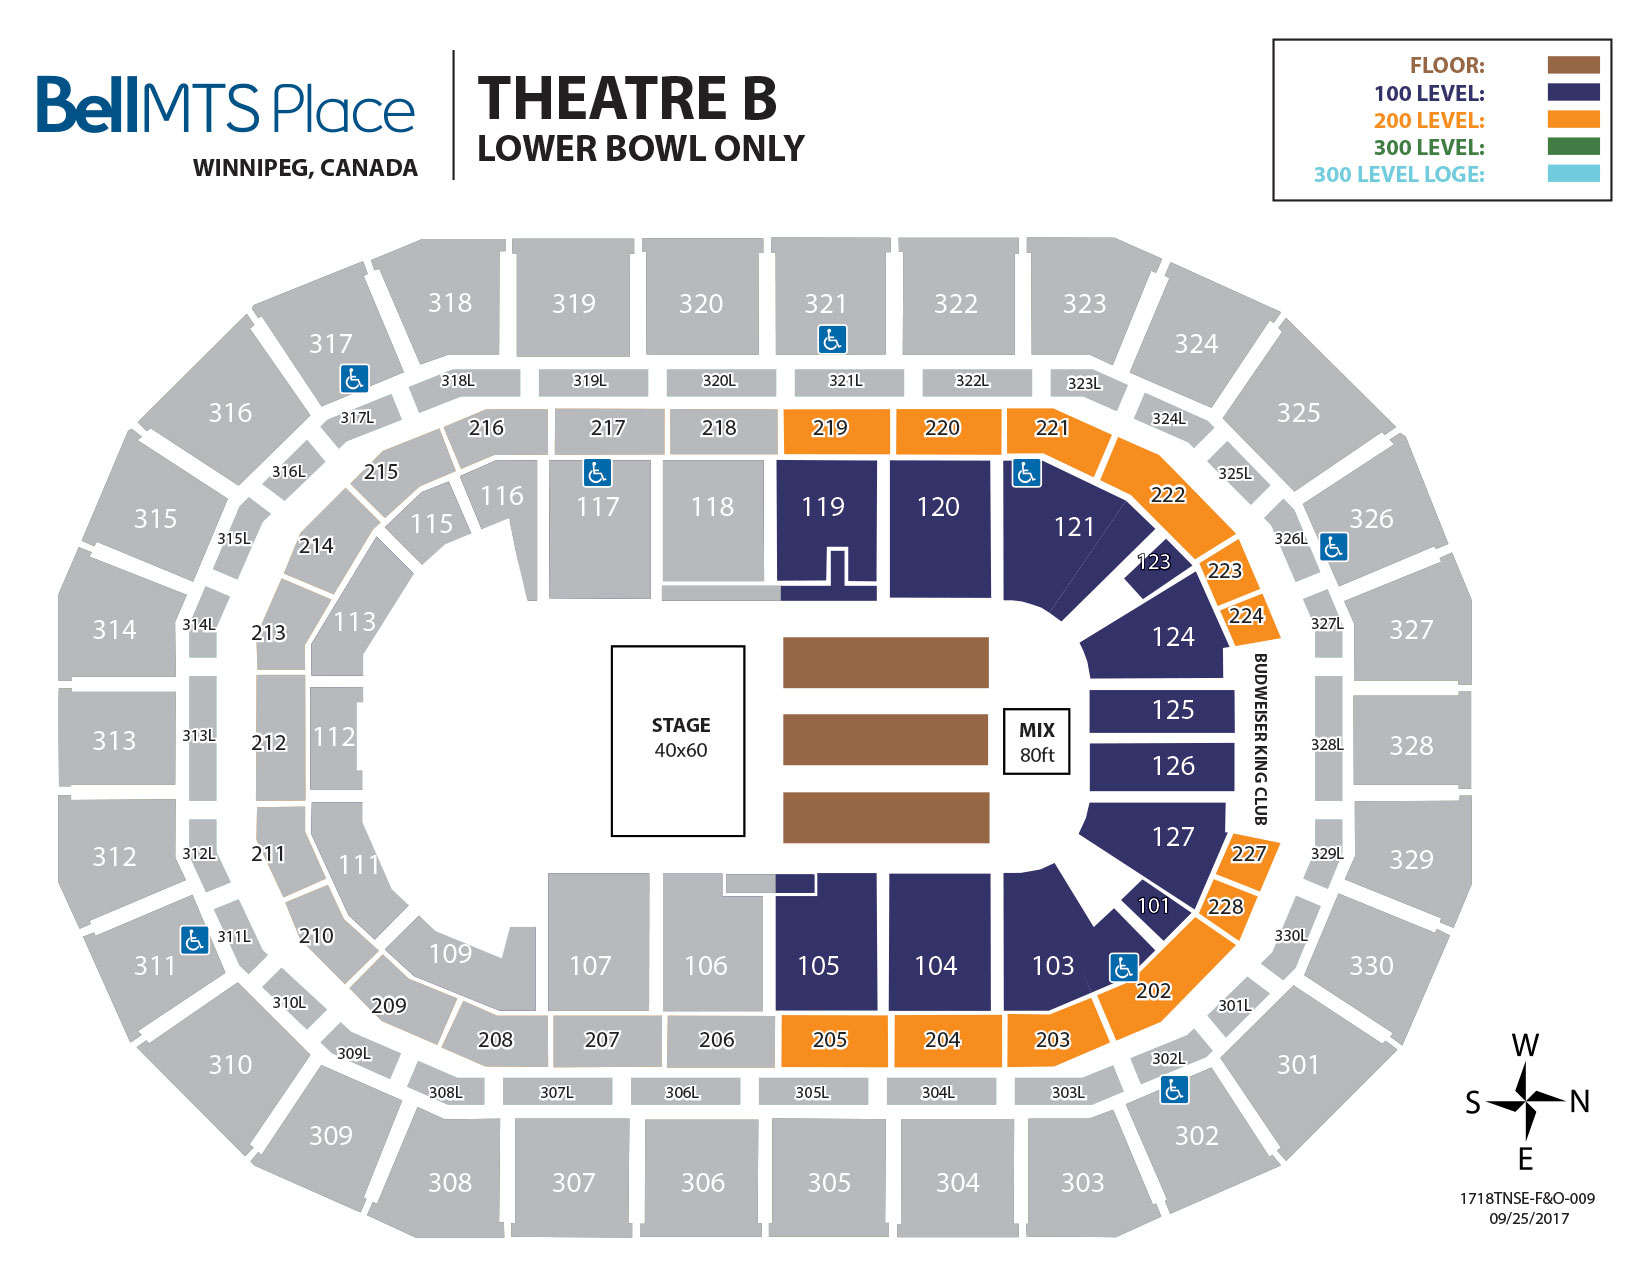 Bell MTS Place - Theatre B Lower Bowl Seating